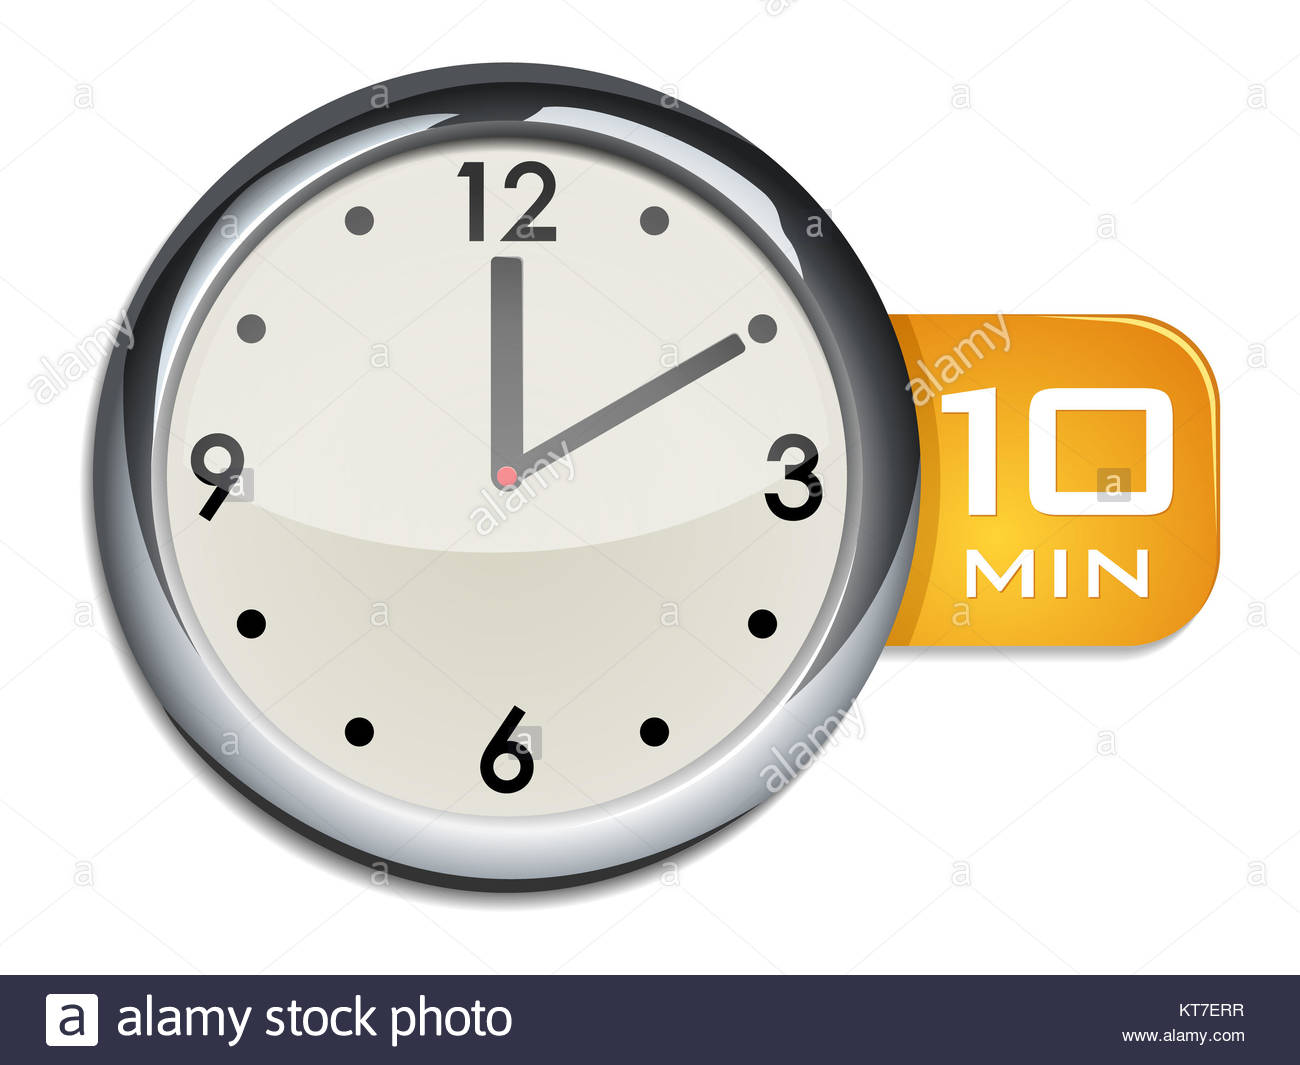 office wall clock timer 10 minutes stock photo 169810363 alamy